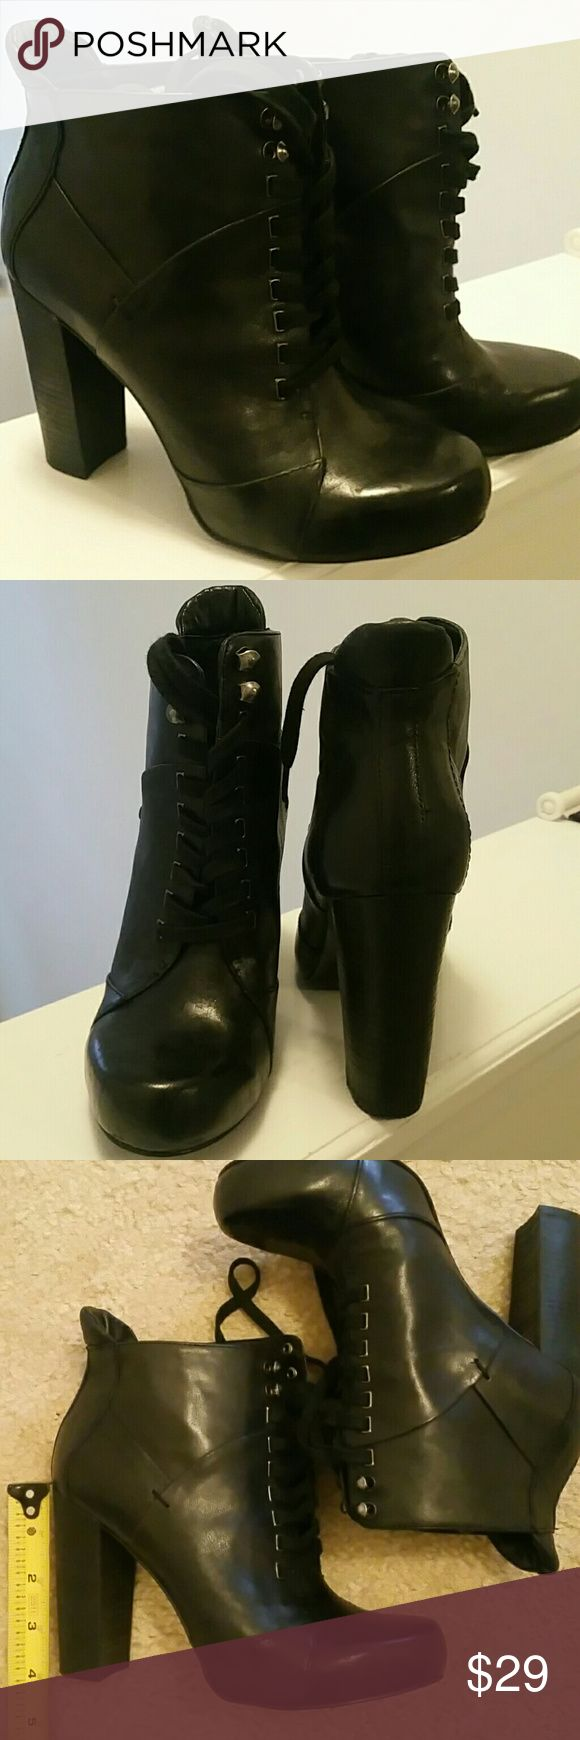 Nine West Ankle  Botin Nine West ankle botin, black leather, size 6.5. Nine West Shoes Ankle Boots & Booties